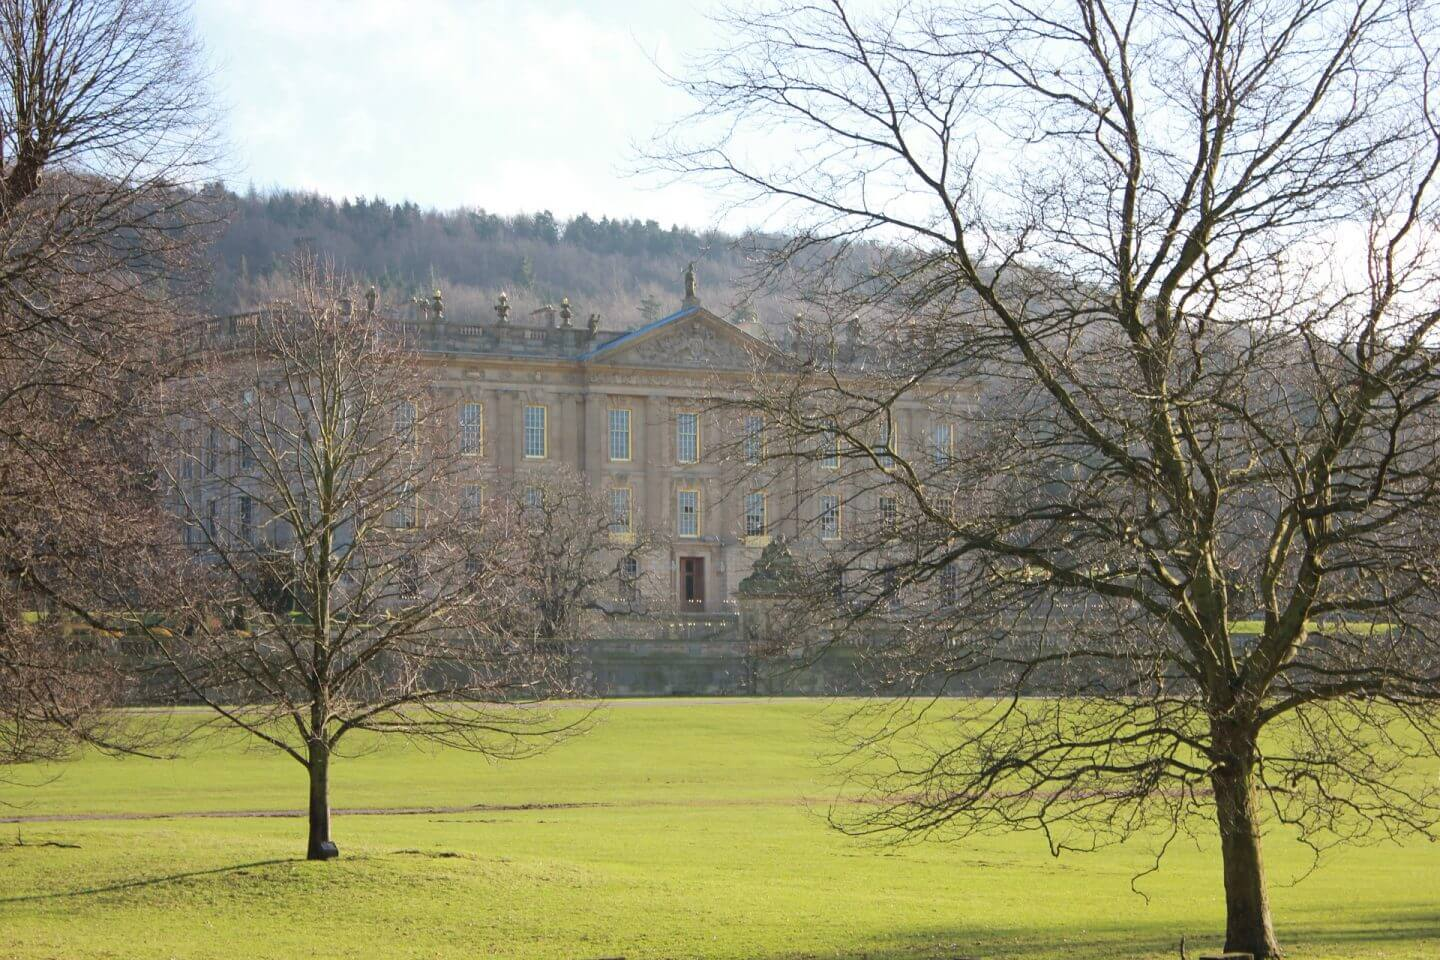 The beautiful Chatsworth House peeking through bare trees against a sunny sky